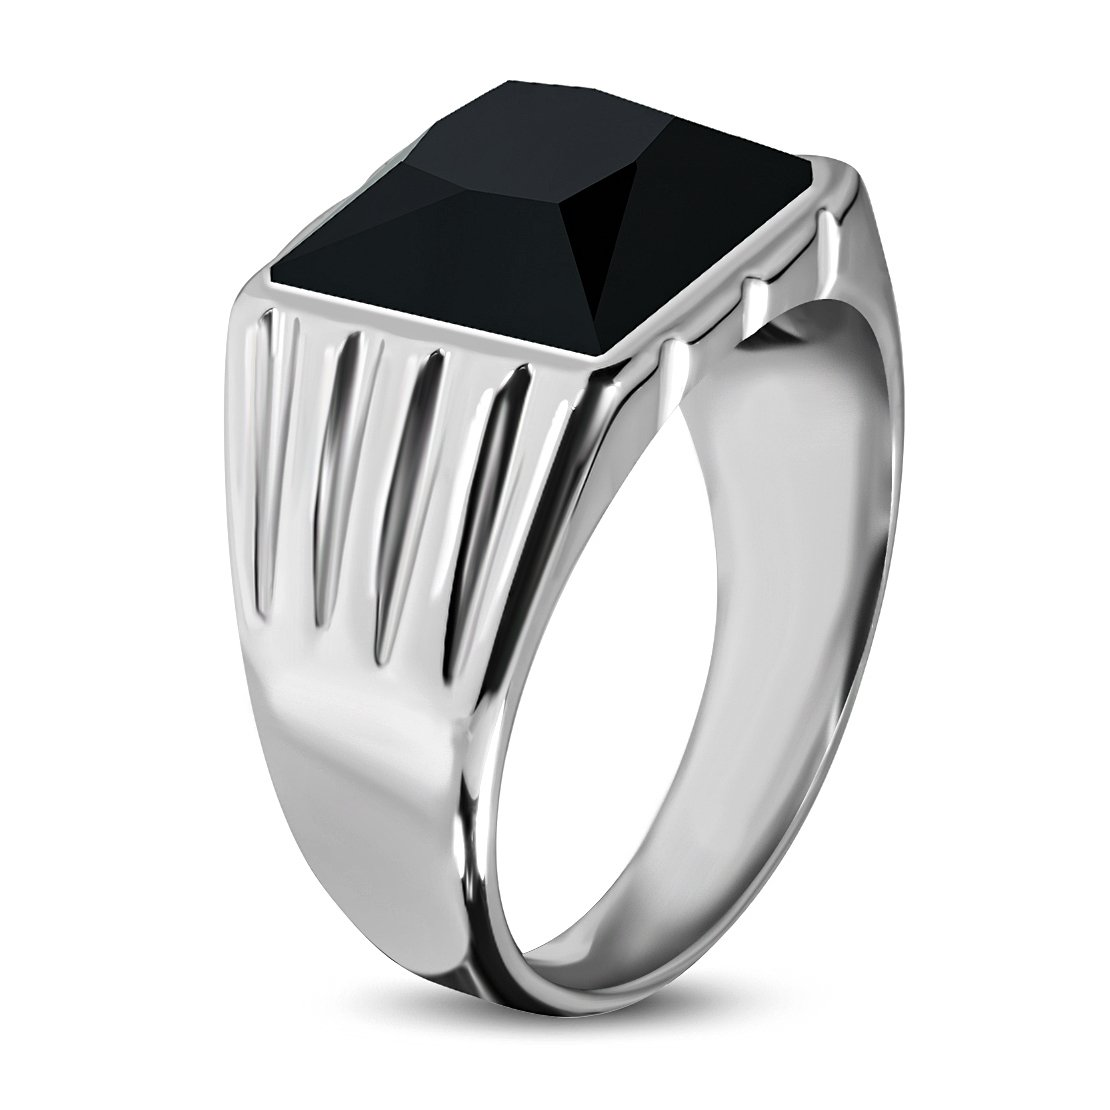 Stainless Steel Grooved Shank Bezel-Set Square Ring with Black Glass Stone